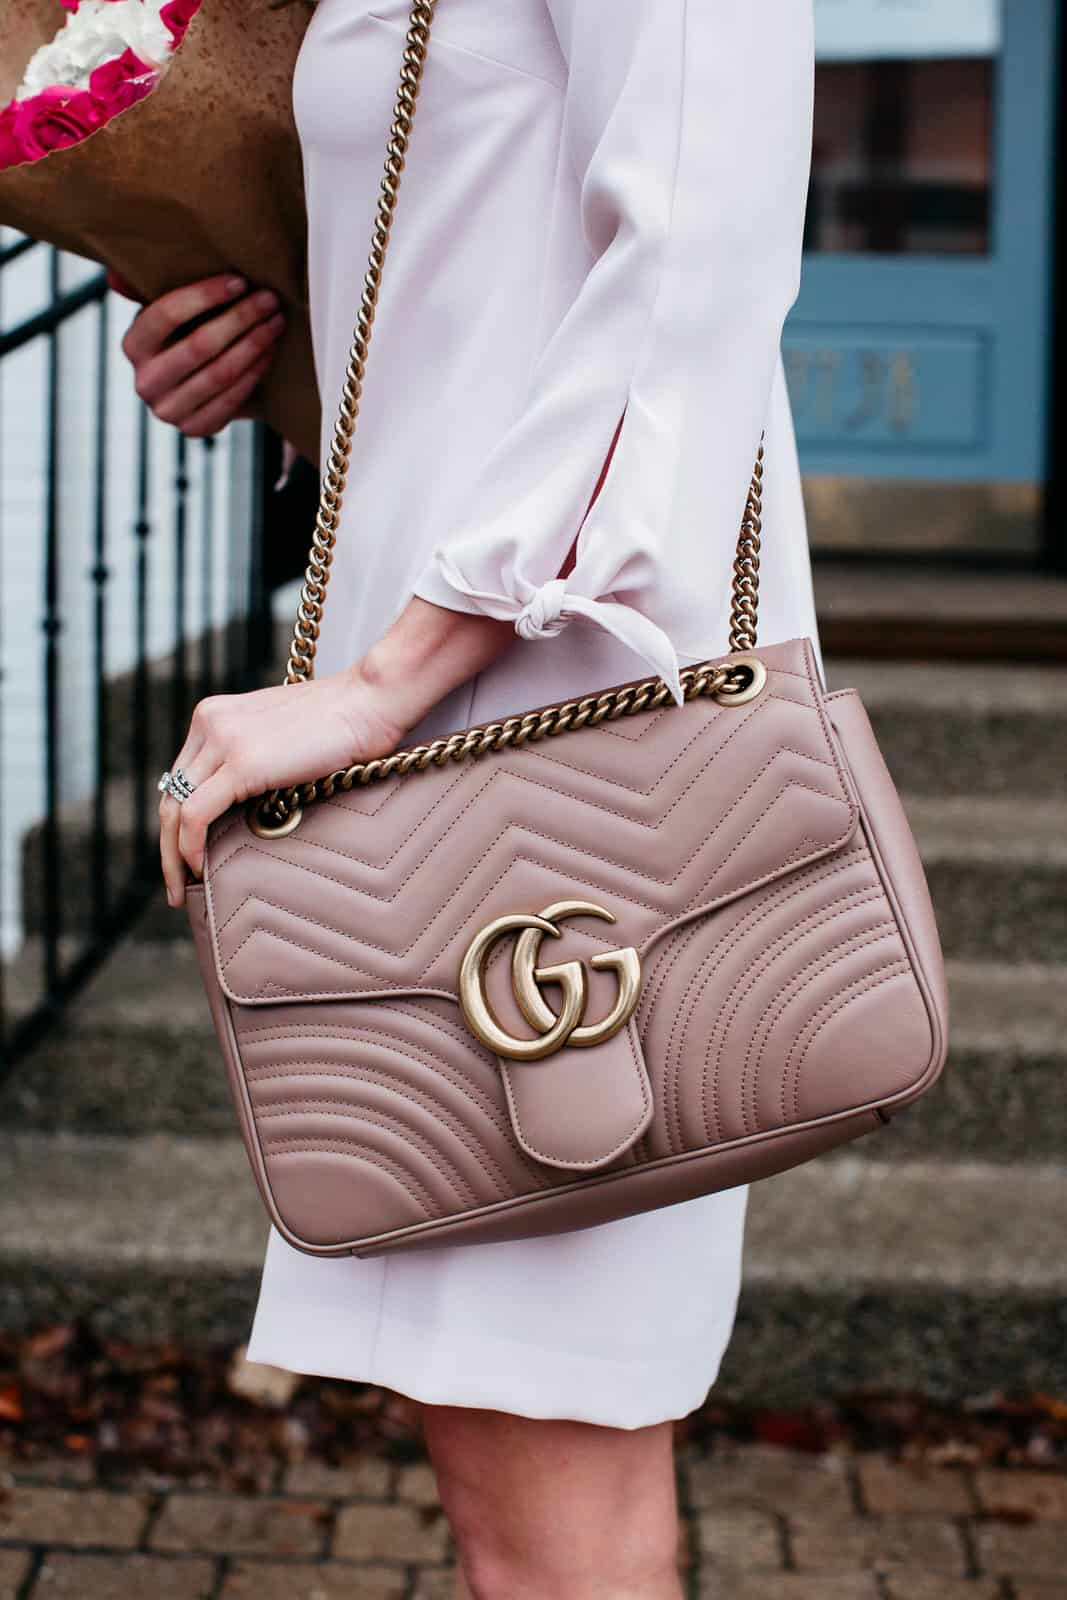 When to splurge on a handbag